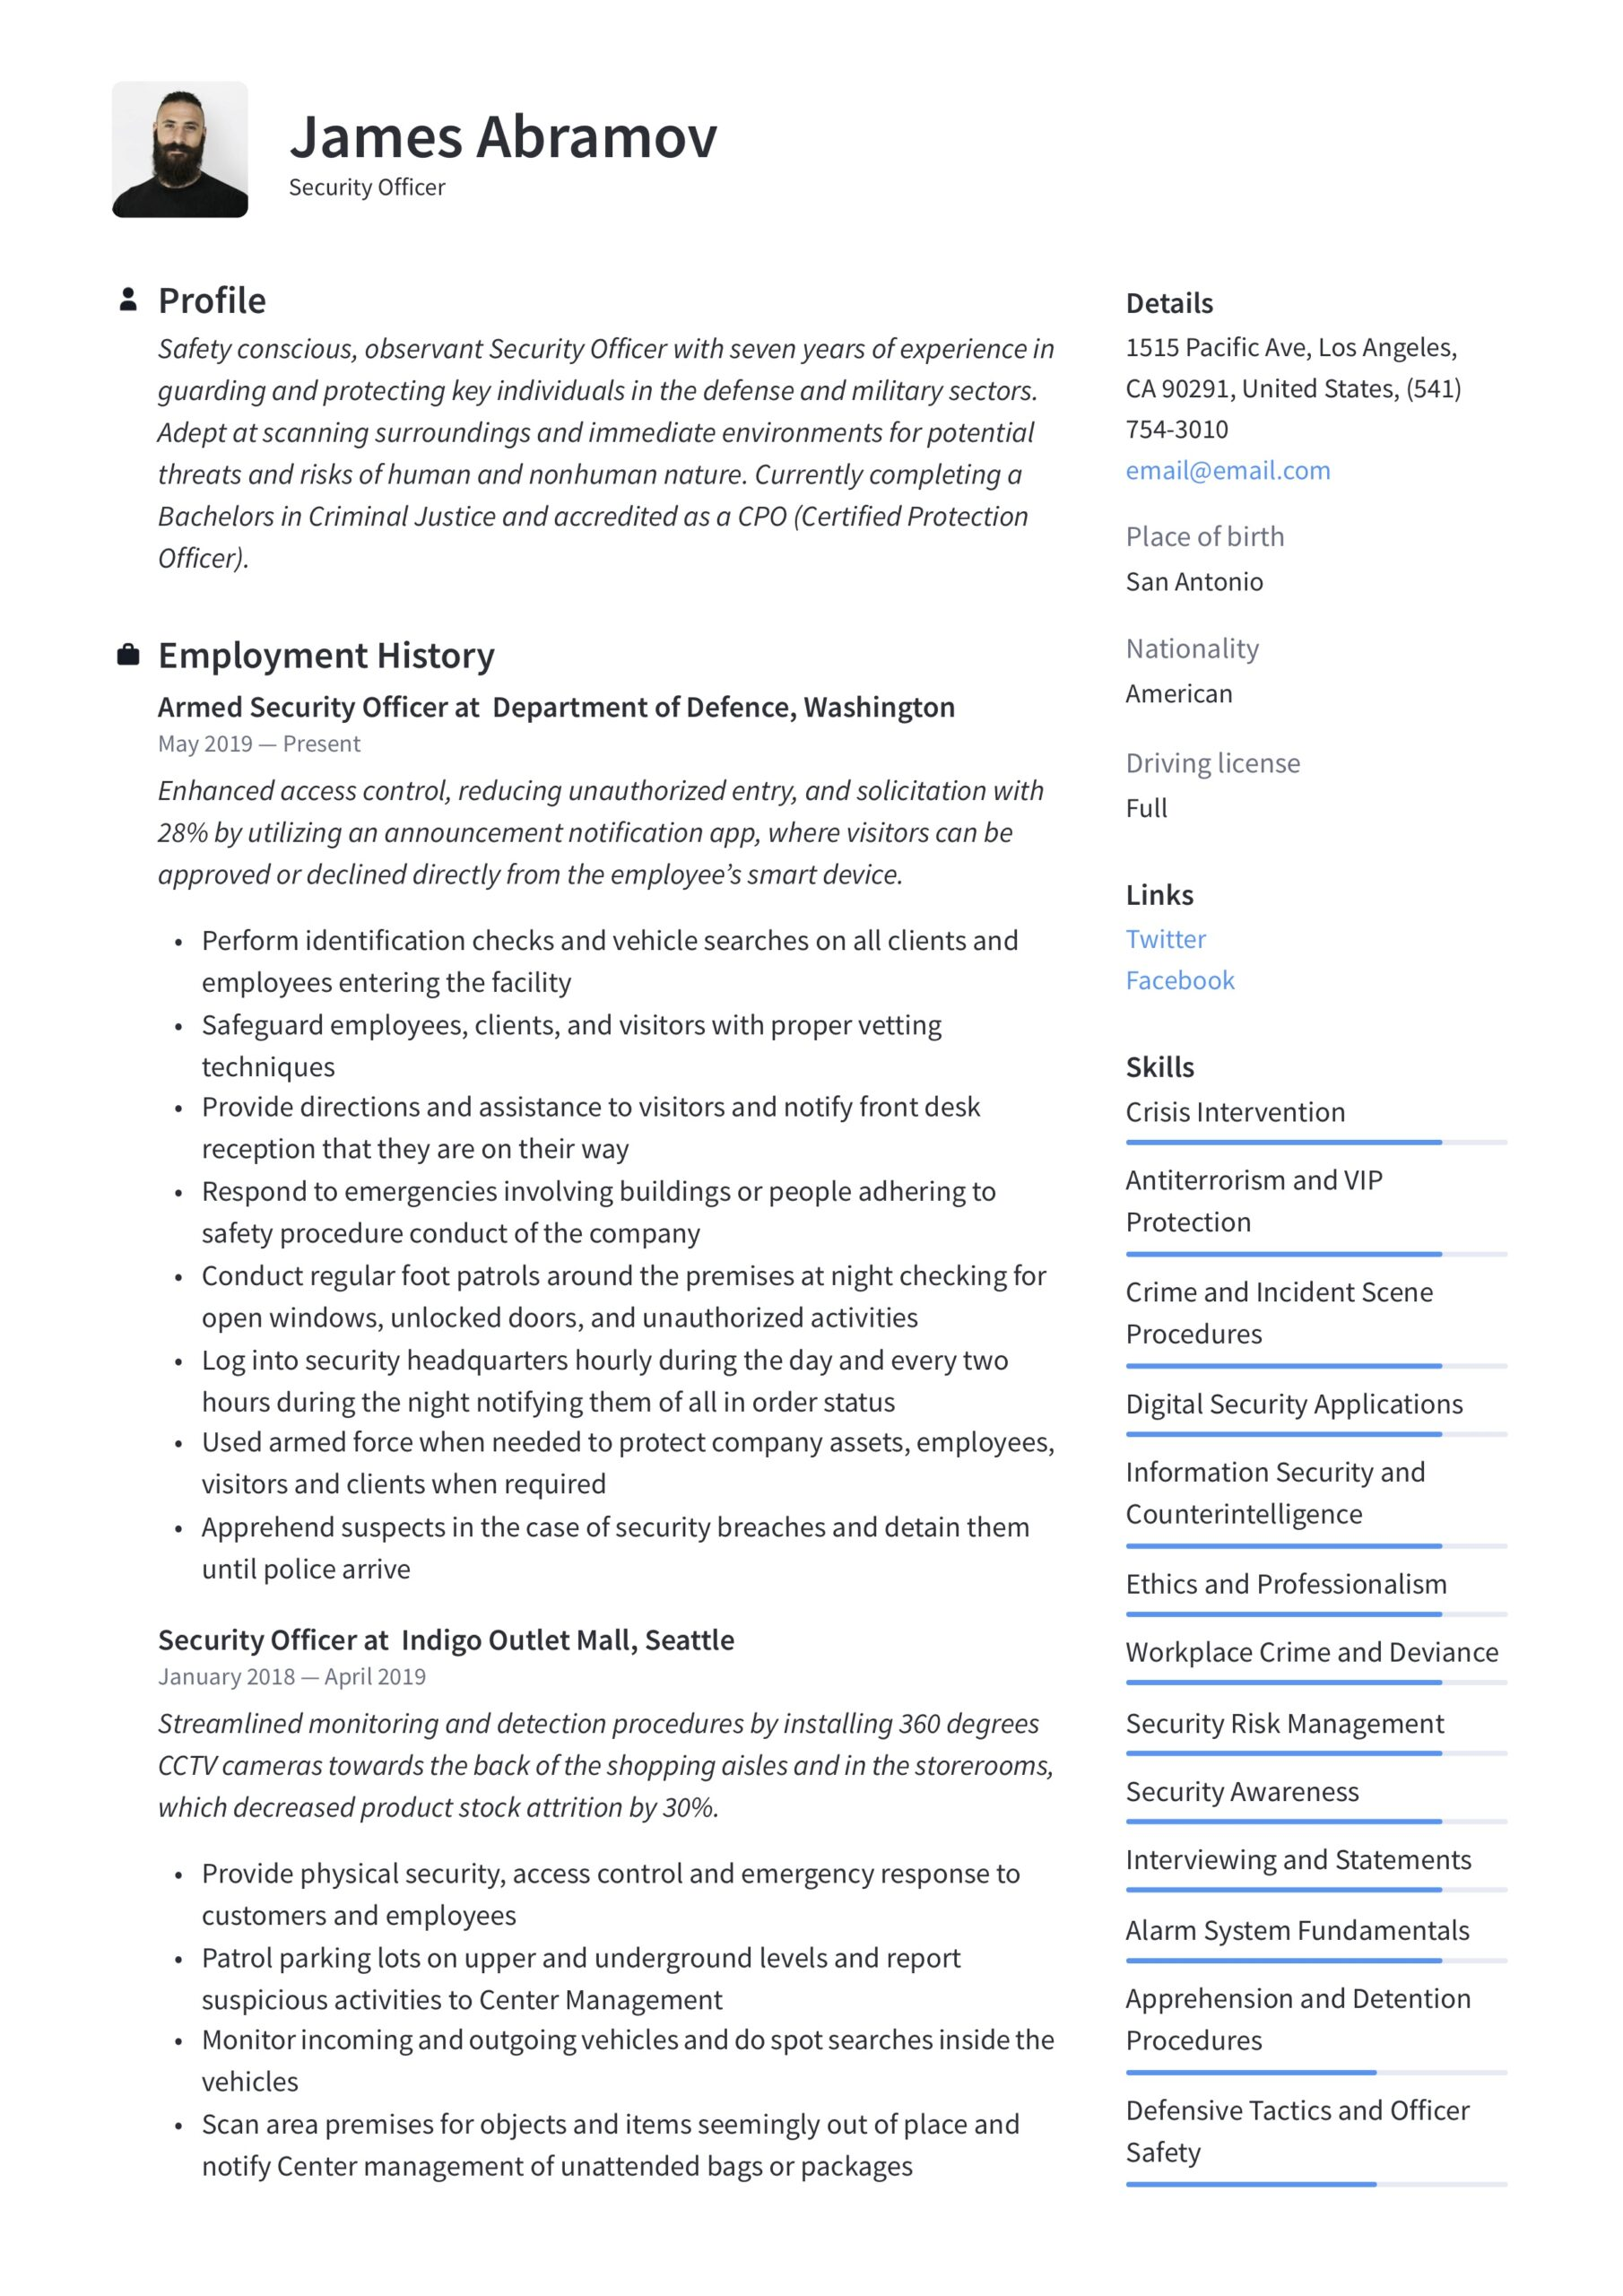 security officer resume writing guide examples access control chief of staff job admin Resume Security Access Control Resume